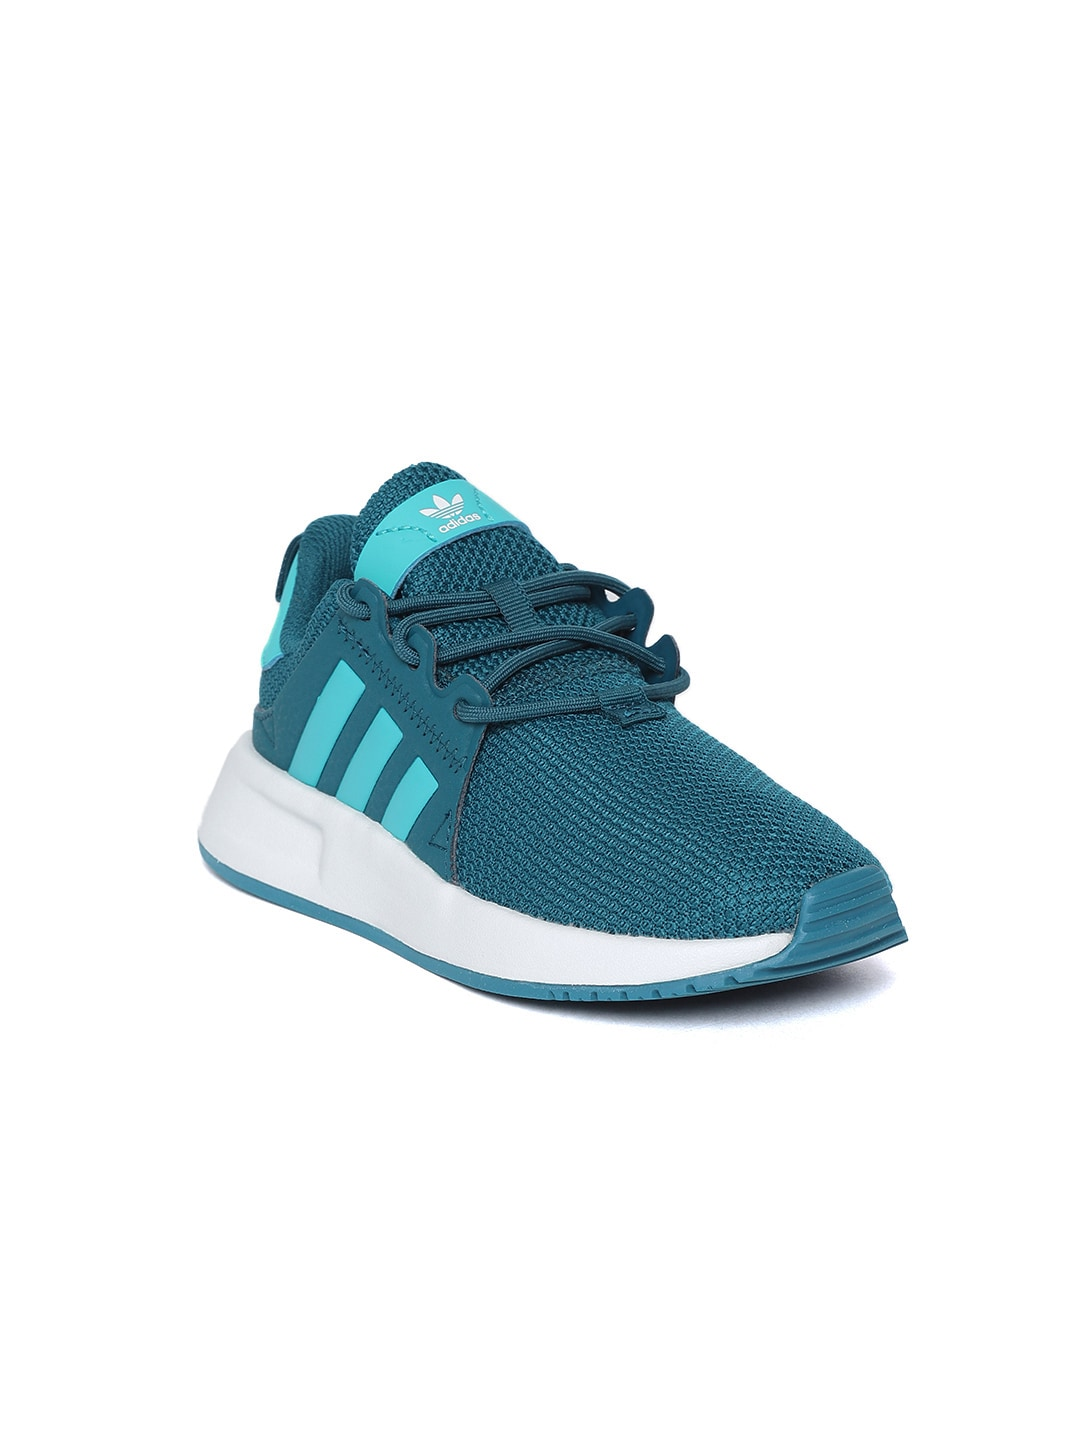 Kids Adidas In India Buy Shoes Online NO0w8vymnP